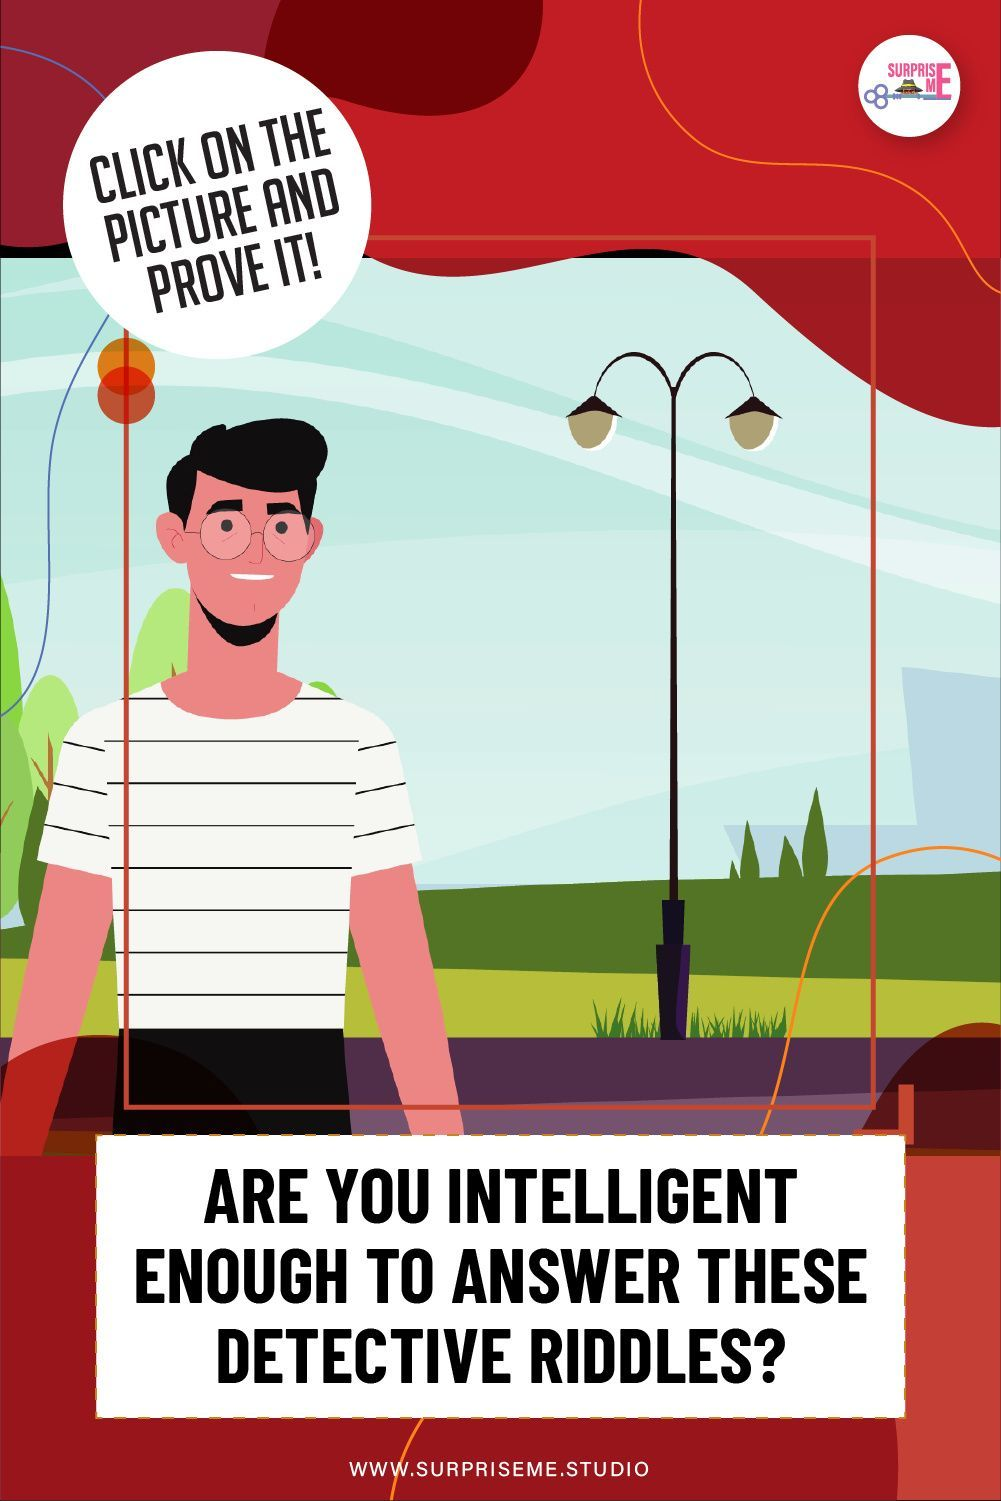 Are You Intelligent Enough to Answer these Detective